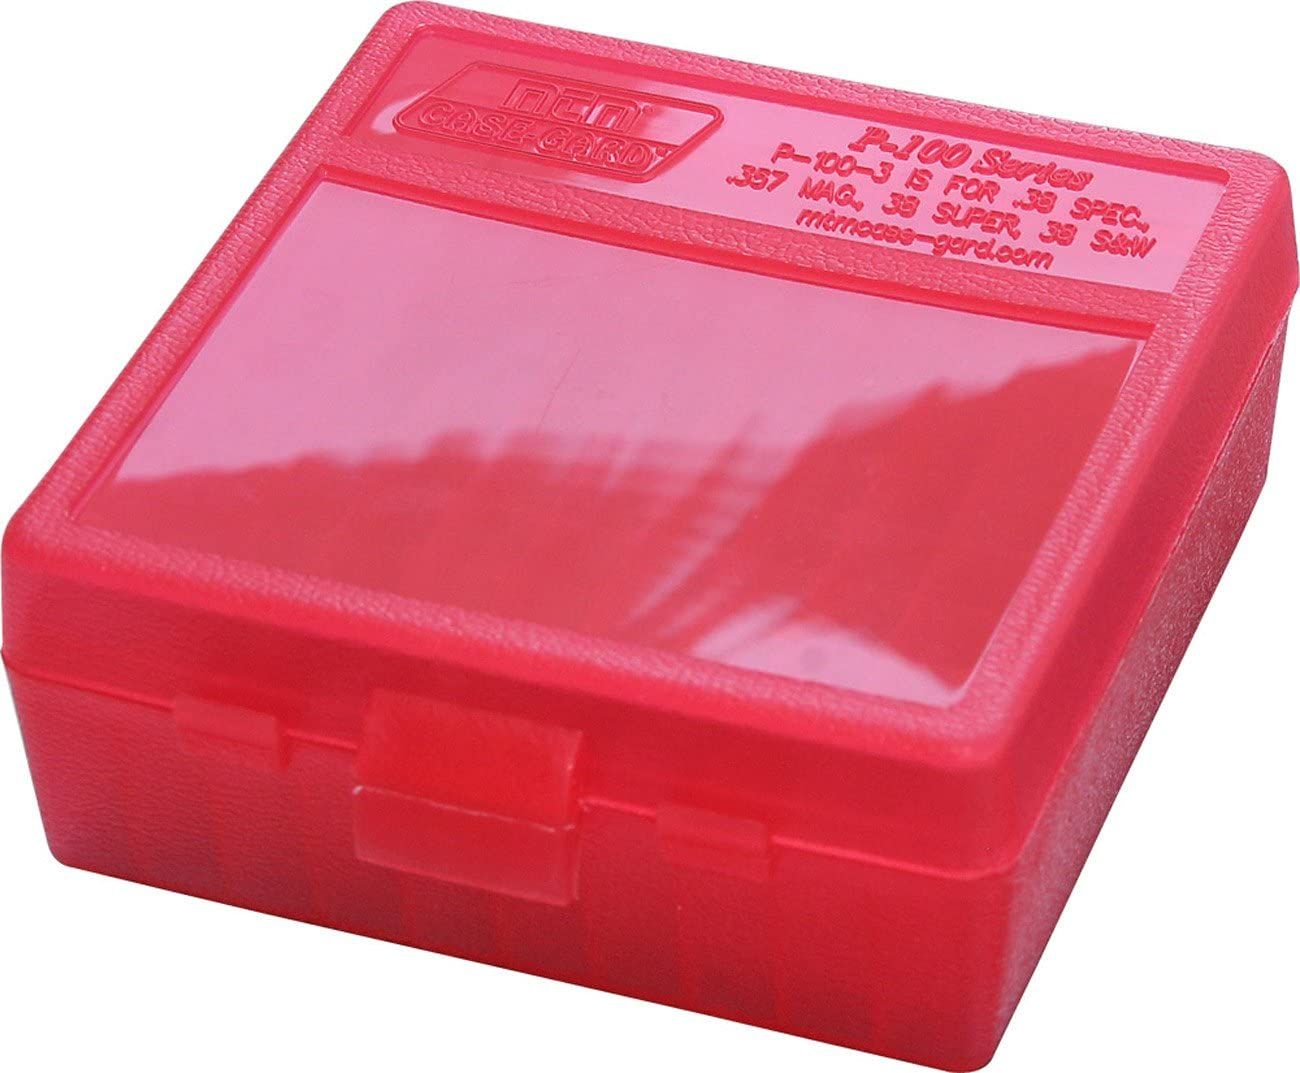 BERRY/'S MFG PLASTIC STORAGE AMMO BOXES 5 pack 357 // 38 CLEAR